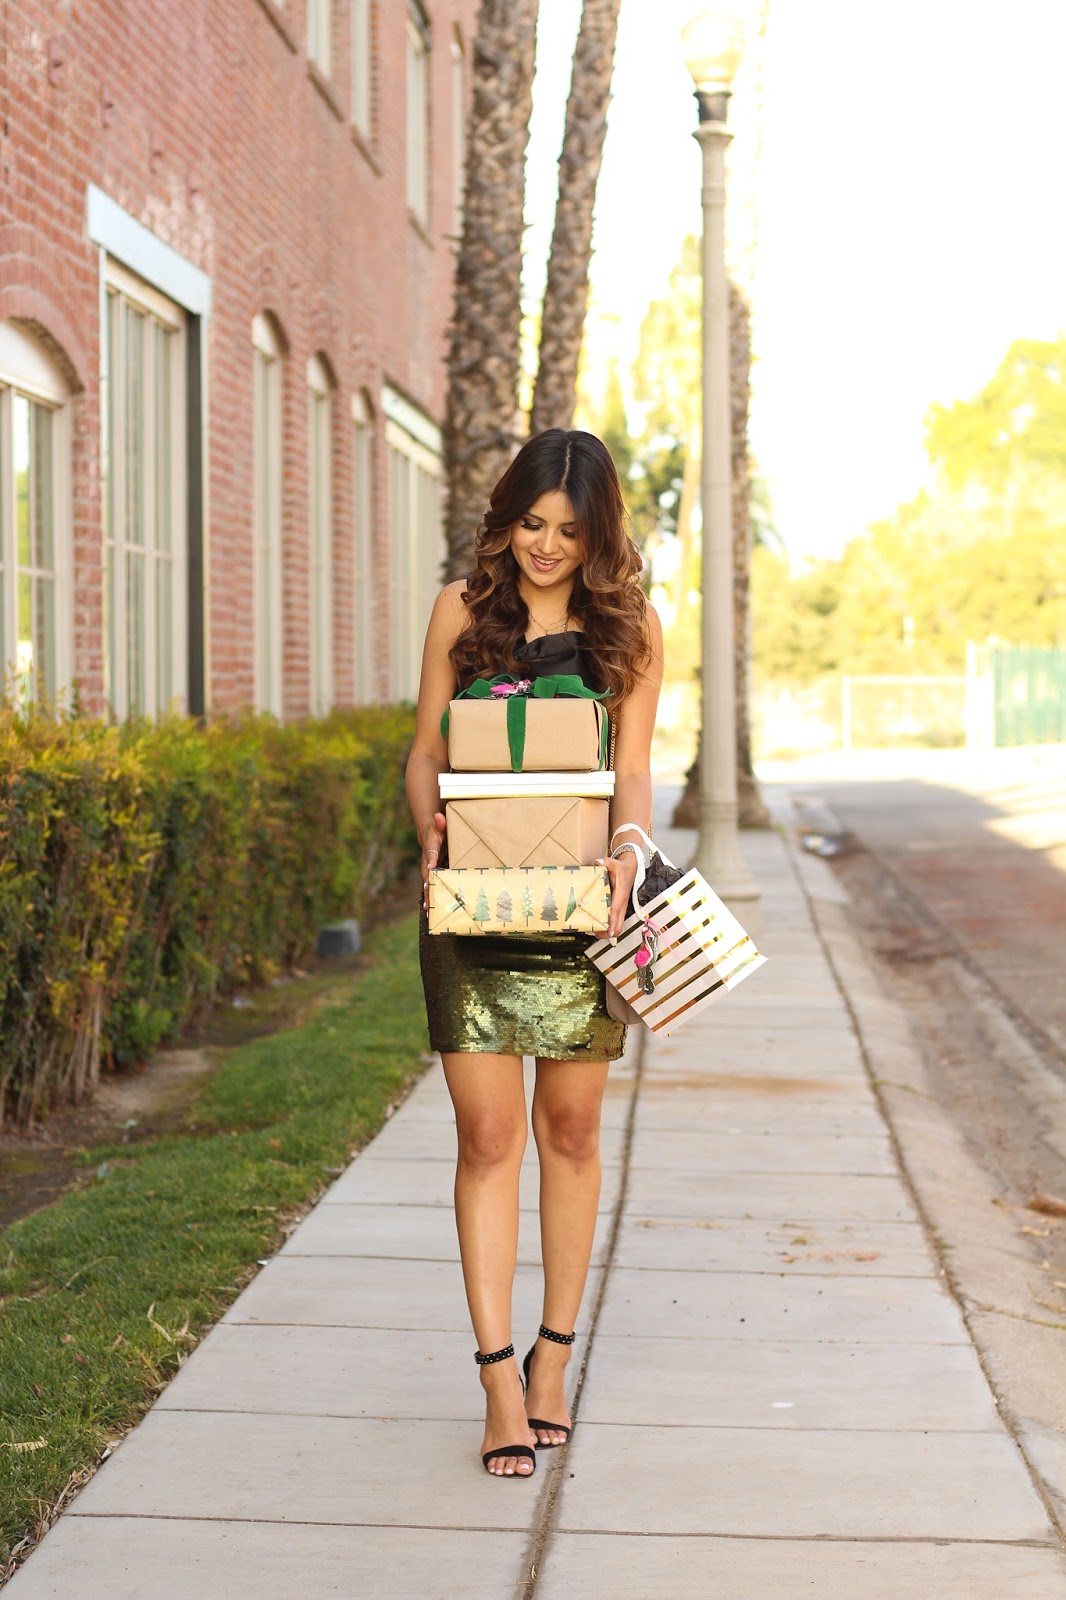 Green Sequin Skirt Outfit For Christmas Holiday Outfit